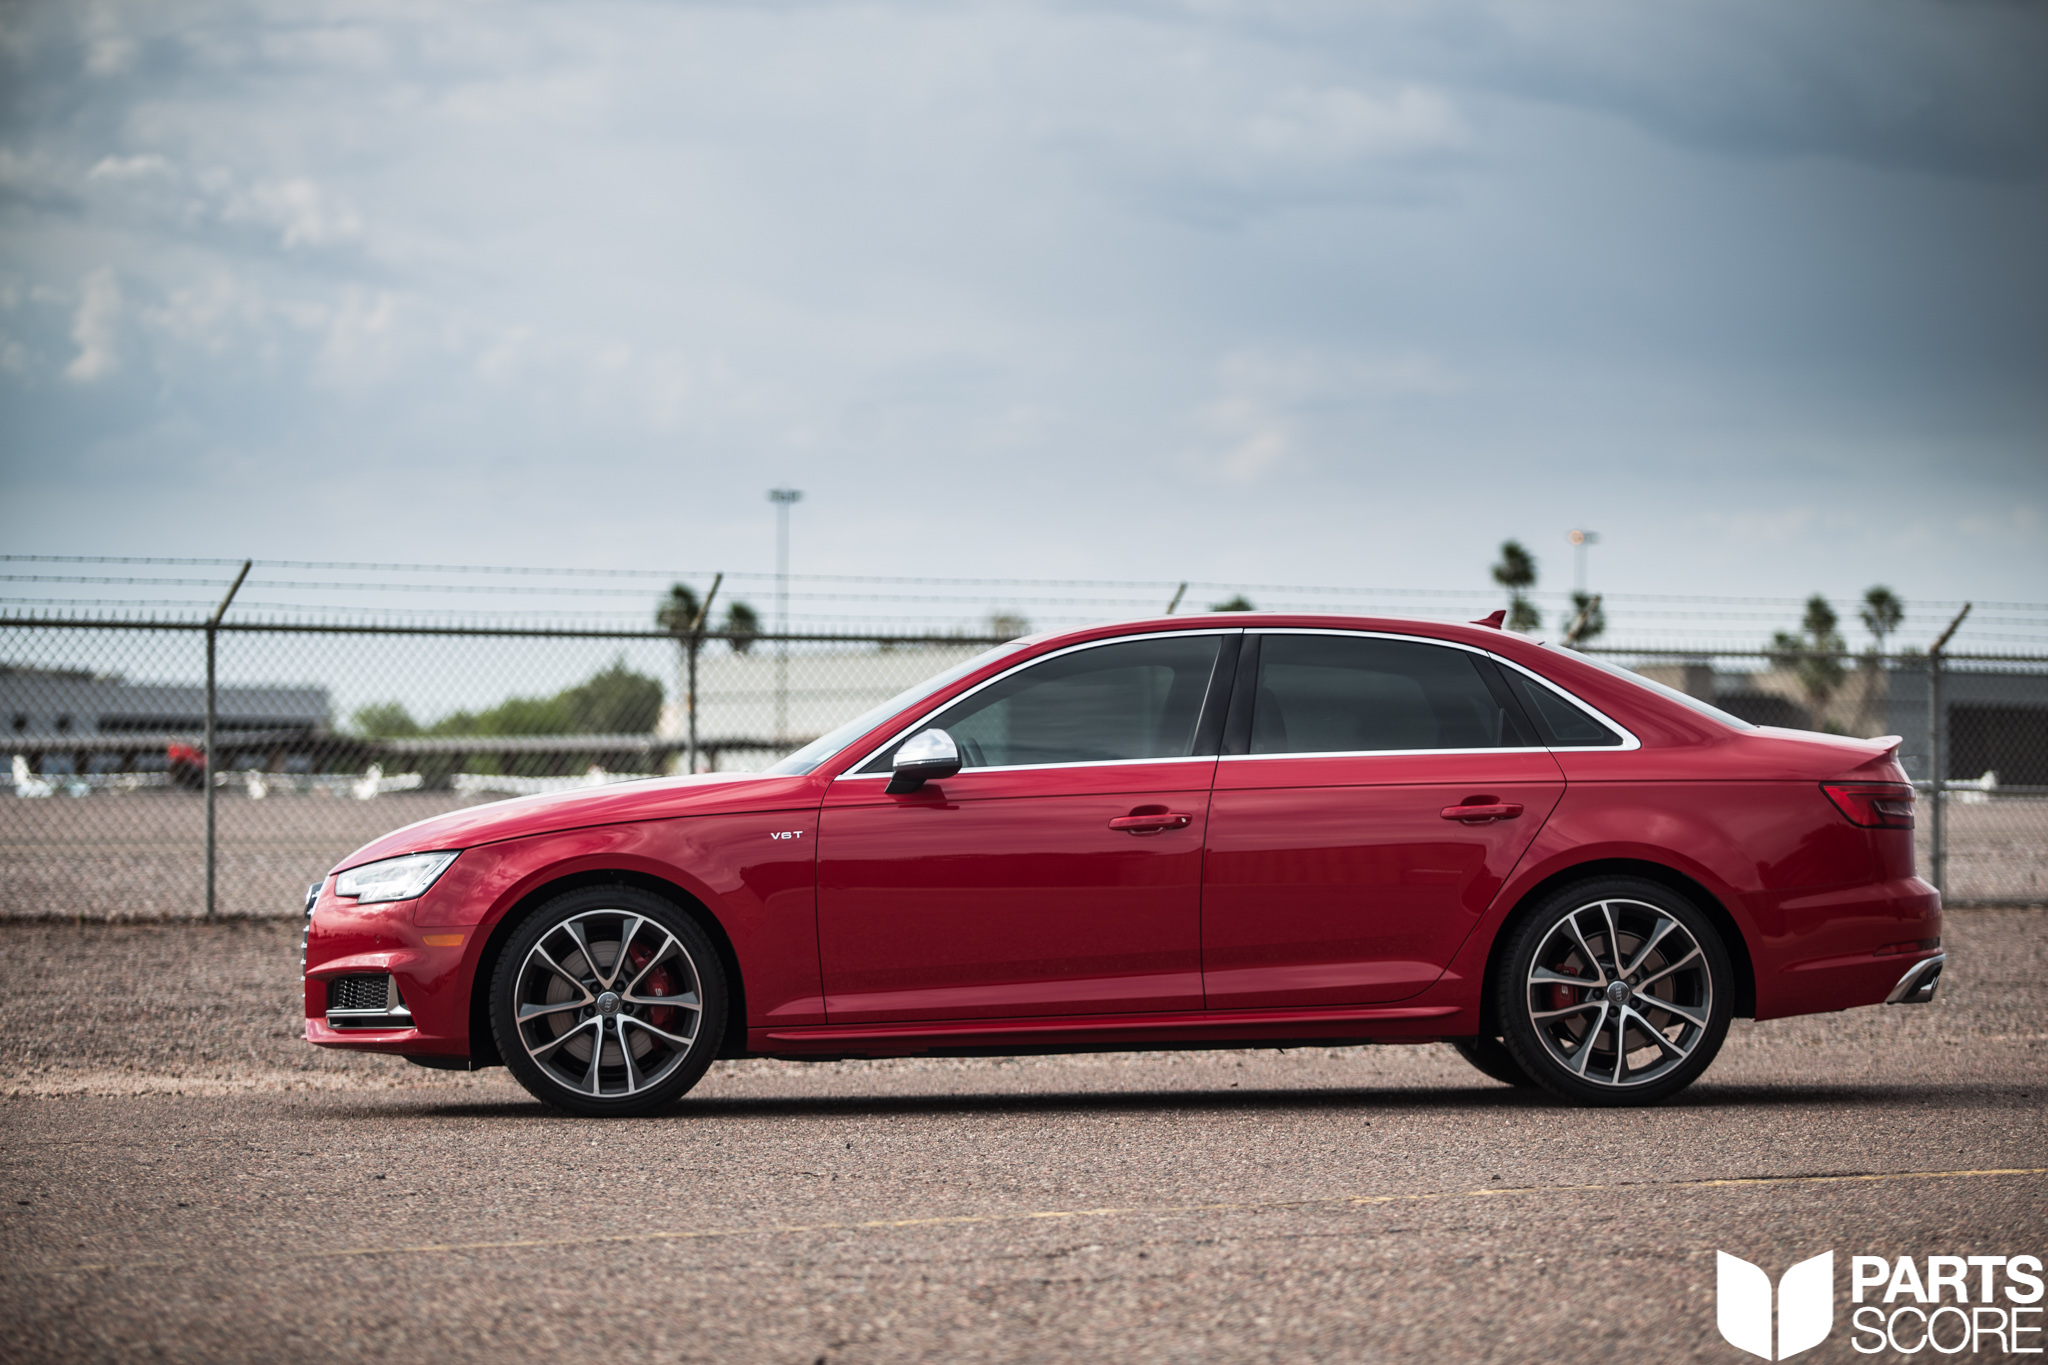 arizona, Audi, audi b9 s4, audi b9 s5, audi performance, audi s4, b9 audi mods, b9 h and r springs, b9 h r coilovers, b9 h&r springs, b9 modifications, b9 performance, b9 s4, b9 s4 034, b9 s4 034 motorsports, b9 s4 apr, b9 s4 awe tuning, b9 s4 carbon fiber, b9 s4 downpipe, b9 s4 exhaust, b9 s4 flash, b9 s4 flash tune, b9 s4 front lip, b9 s4 giac, b9 s4 giac tune, b9 s4 h and r coilovers, b9 s4 h r coilovers, b9 s4 h&r coilovers, b9 s4 h&r springs, b9 s4 intake, b9 s4 kw coilovers, b9 s4 kwv1, b9 s4 kwv2, b9 s4 kwv3, b9 s4 lip, b9 s4 milltek, b9 s4 modification, b9 s4 mods, b9 s4 navigation, b9 s4 ohlins, b9 s4 ohlins road and track, b9 s4 painted reflectors, b9 s4 performance, b9 s4 performance mods, b9 s4 power, b9 s4 spacers, b9 s4 spoiler, b9 s4 springs, b9 s4 tune, b9 s5, b9 s5 apr, b9 s5 awe tuning, b9 s5 carbon fiber, b9 s5 downpipe, b9 s5 exhaust, b9 s5 front lip, b9 s5 giac, b9 s5 h&r springs, b9 s5 intake, b9 s5 milltek, b9 s5 mods, b9 s5 painted reflectors, b9 s5 performance, b9 s5 power, b9 s5 springs, giac flash, giac tune, giactuned, glacier white, h and r coilovers b9, kw coilovers b9, magma red, parts score, s4 b9 cts turbo, scottsdale